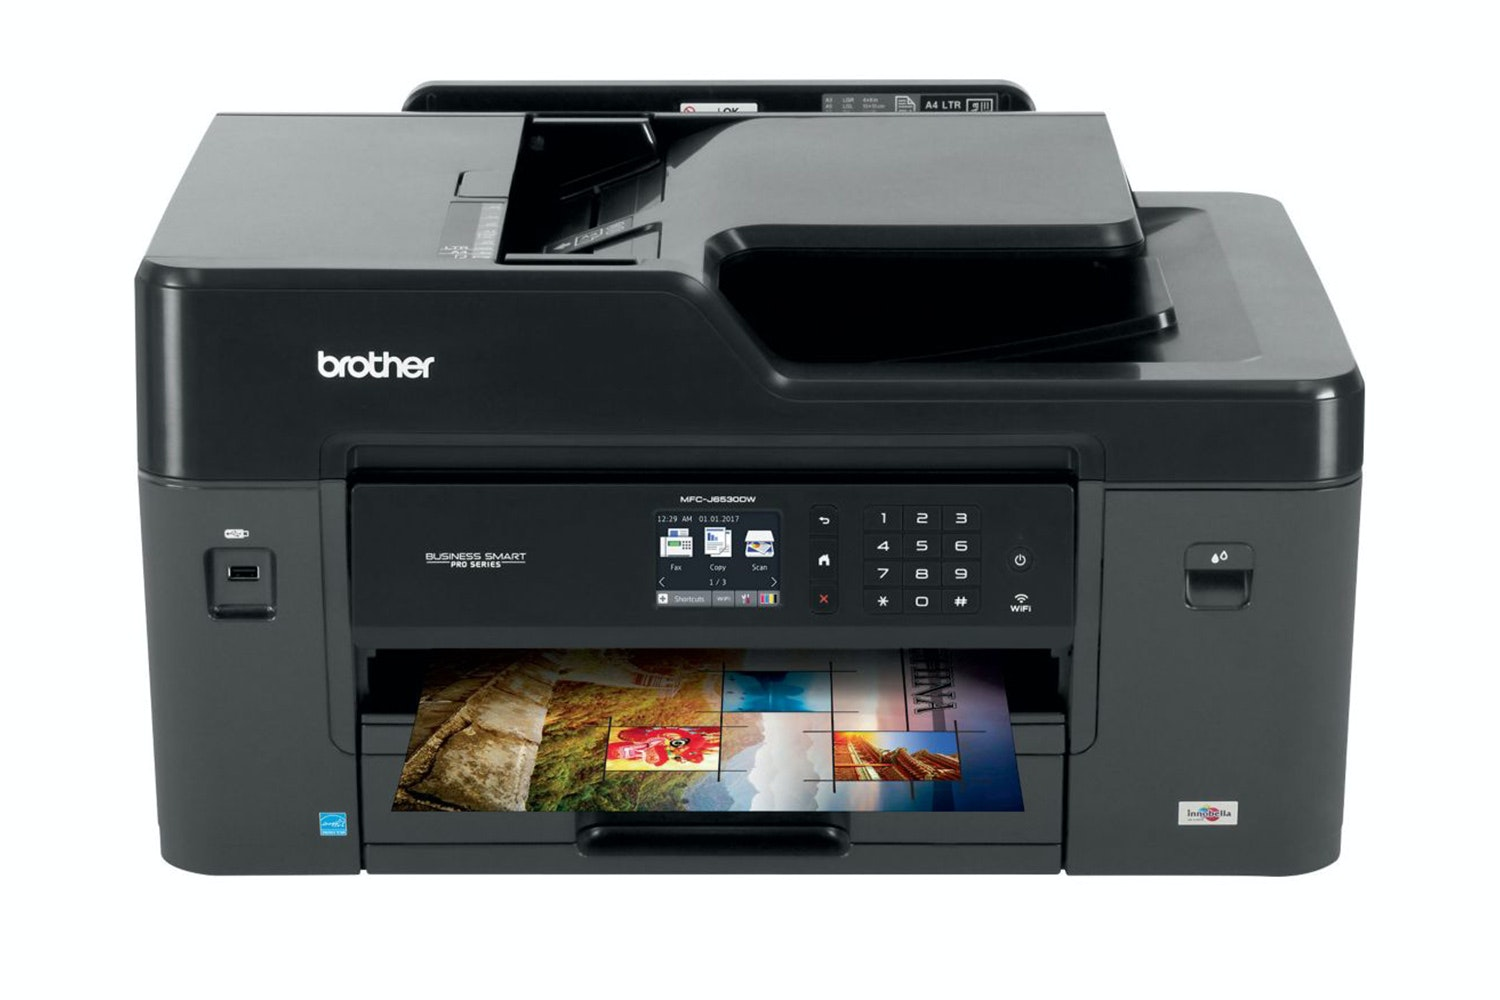 Brother MFC-J6530DW | All-in-one A3 inkjet printer